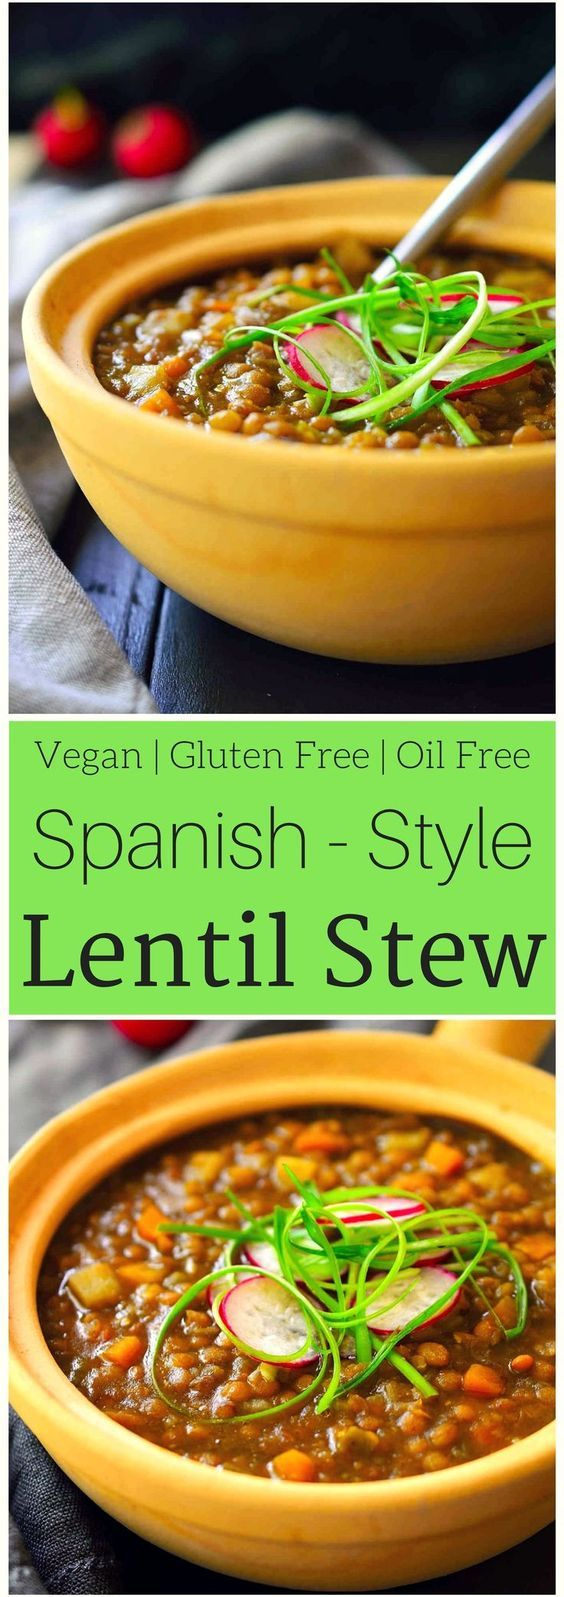 This Spanish-style vegan lentil stew is easy to make with very simple ingredients and perfect for vegans on a serious budget. Hearty and comforting, this oil-free recipe is great as a plant-based main dish for chilly evenings or as a side for a summer barbeque or picnic. It's a freezer-friendly meal that comes in at only $0.50 a serving.